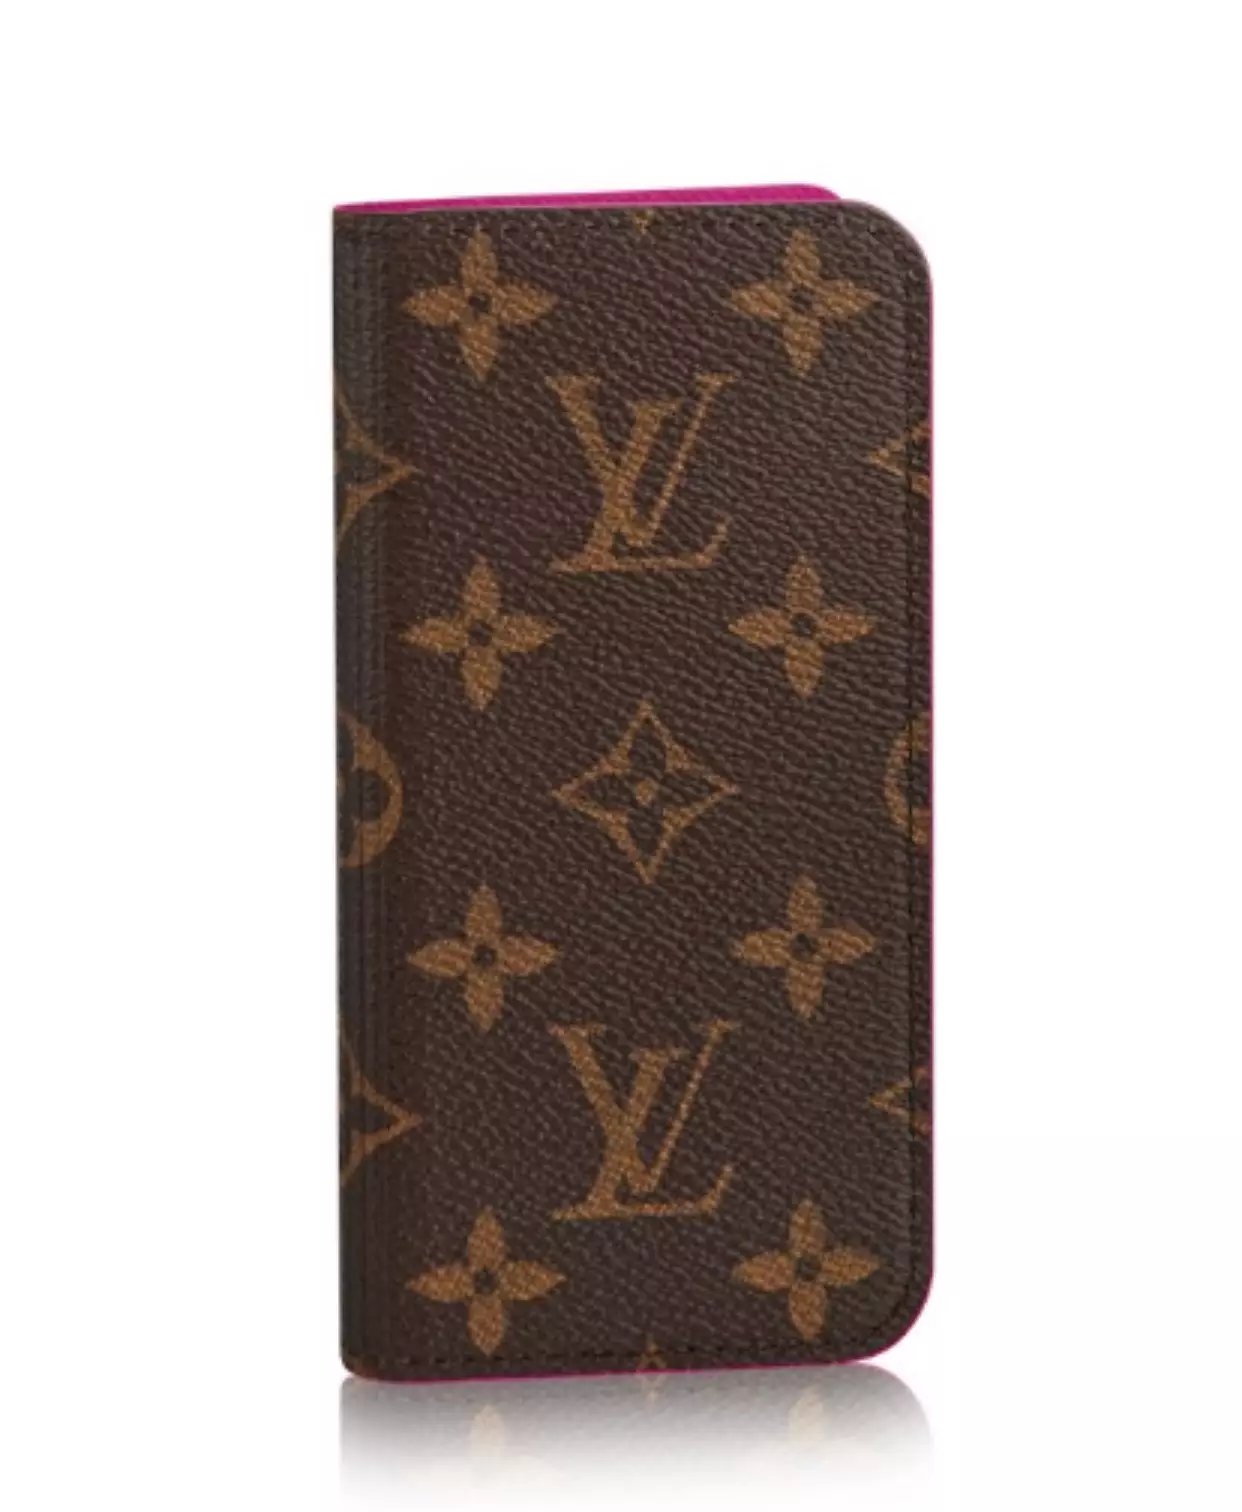 die besten iphone hüllen iphone hüllen günstig Louis Vuitton iphone 8 hüllen 1 phone 8 handyhülle 8lbst kreieren schutzhülle iphone 8 c hülle designen iphone 8 over wech8ln tasche iphone 8